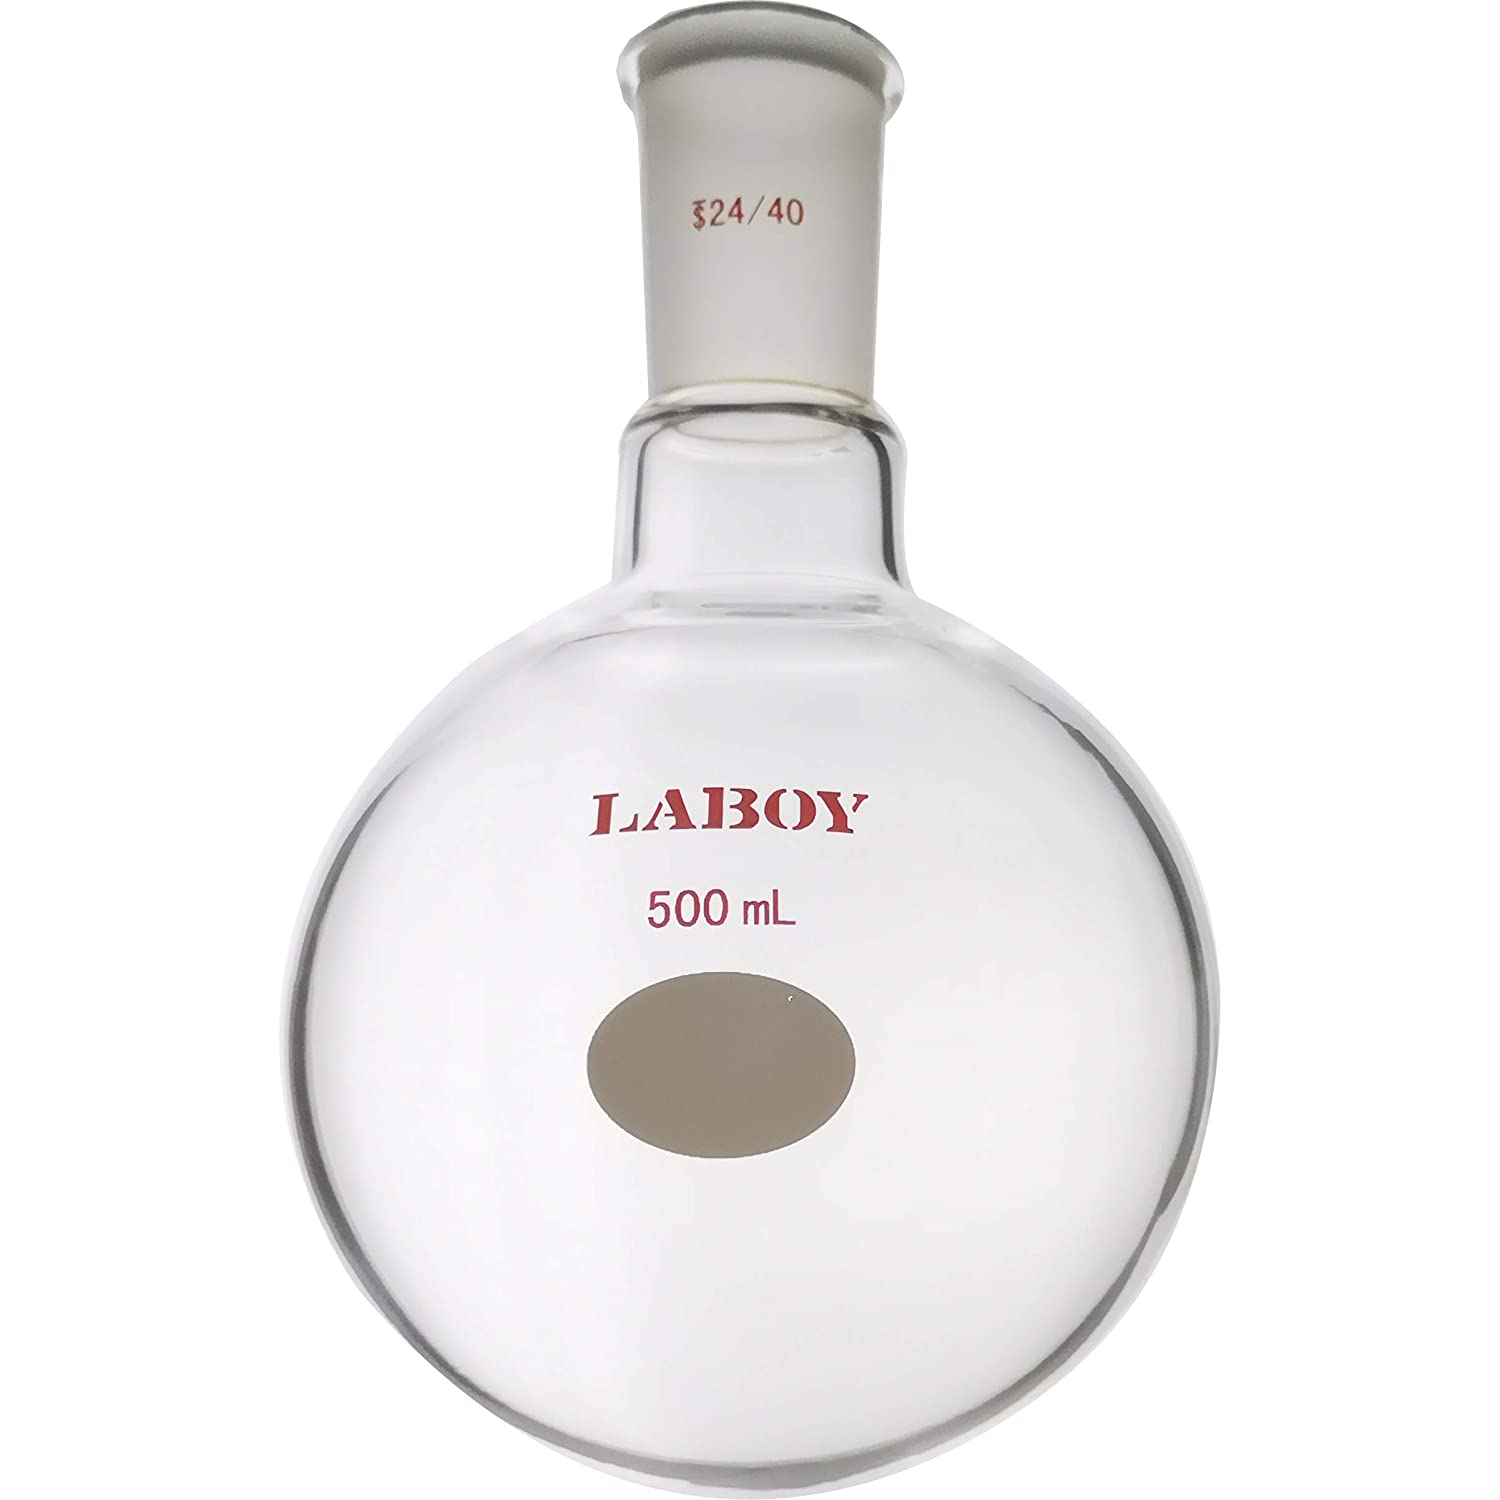 Laboy HMF010326 Glass Single Neck Round Bottom Distillation Boiling Flask 500 mL with 24/40 Joint Lab Glassware